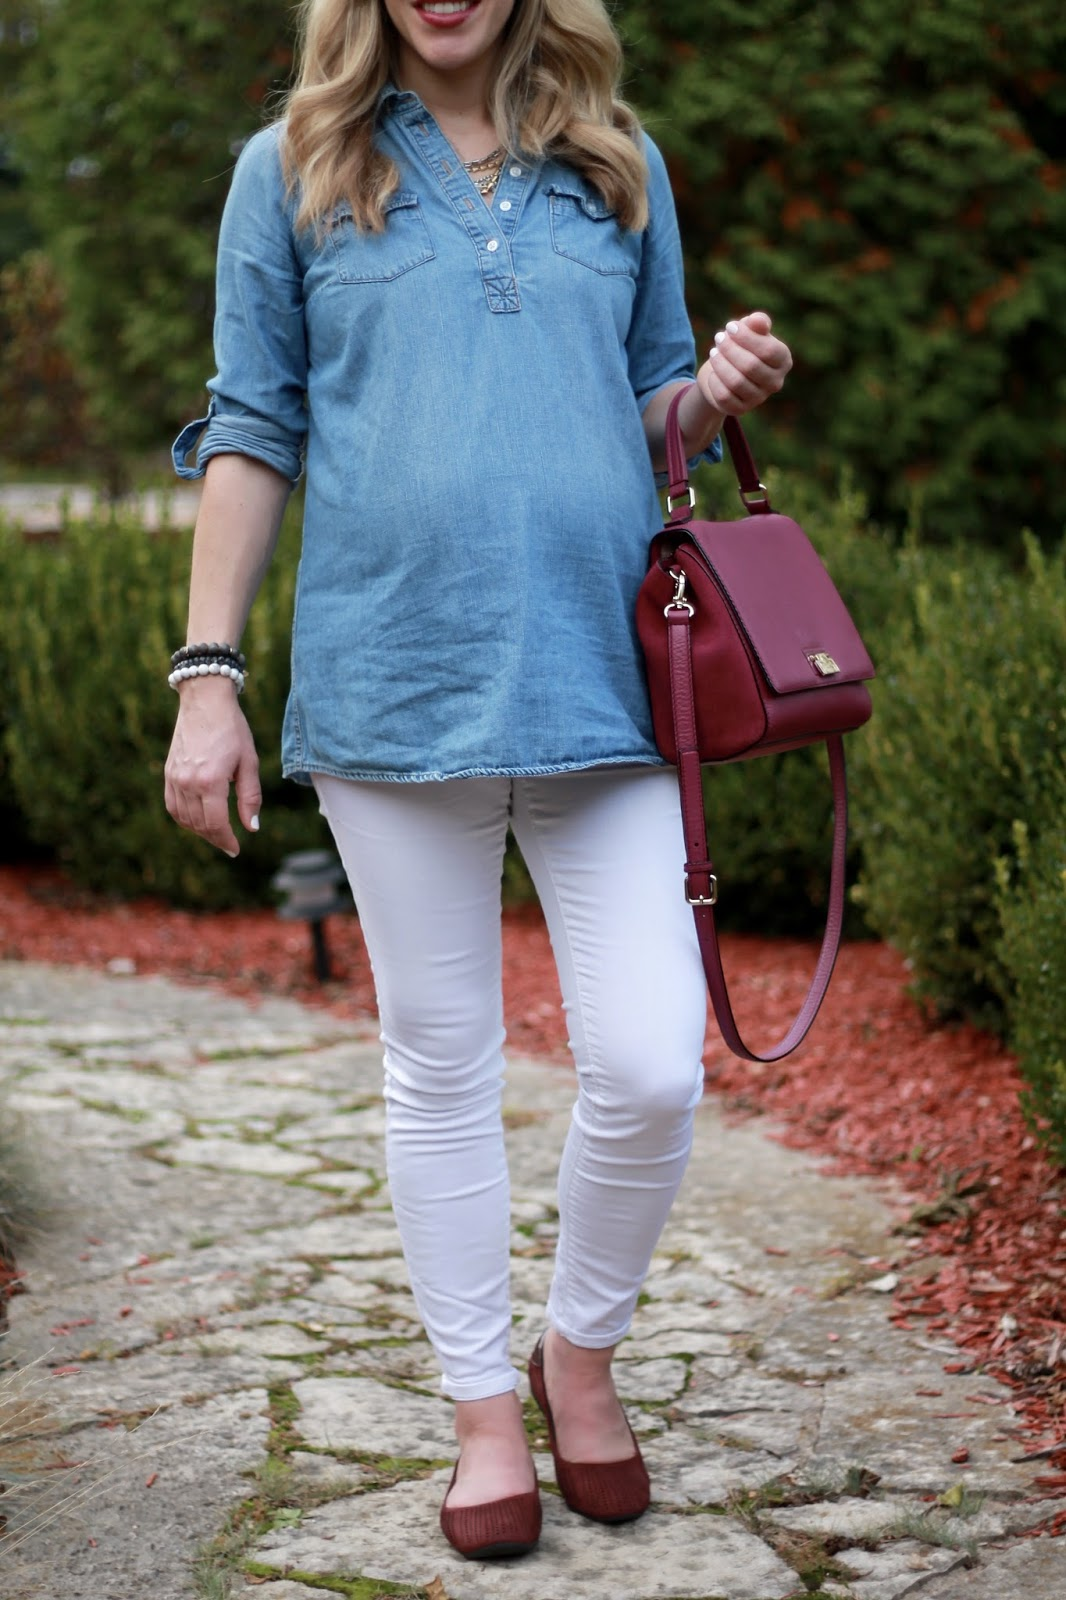 fall maternity outfit, white jeans in fall, chambray, white jeans, burgundy flats, plum Kate Spade bag, Sutton necklace, foot petals flats